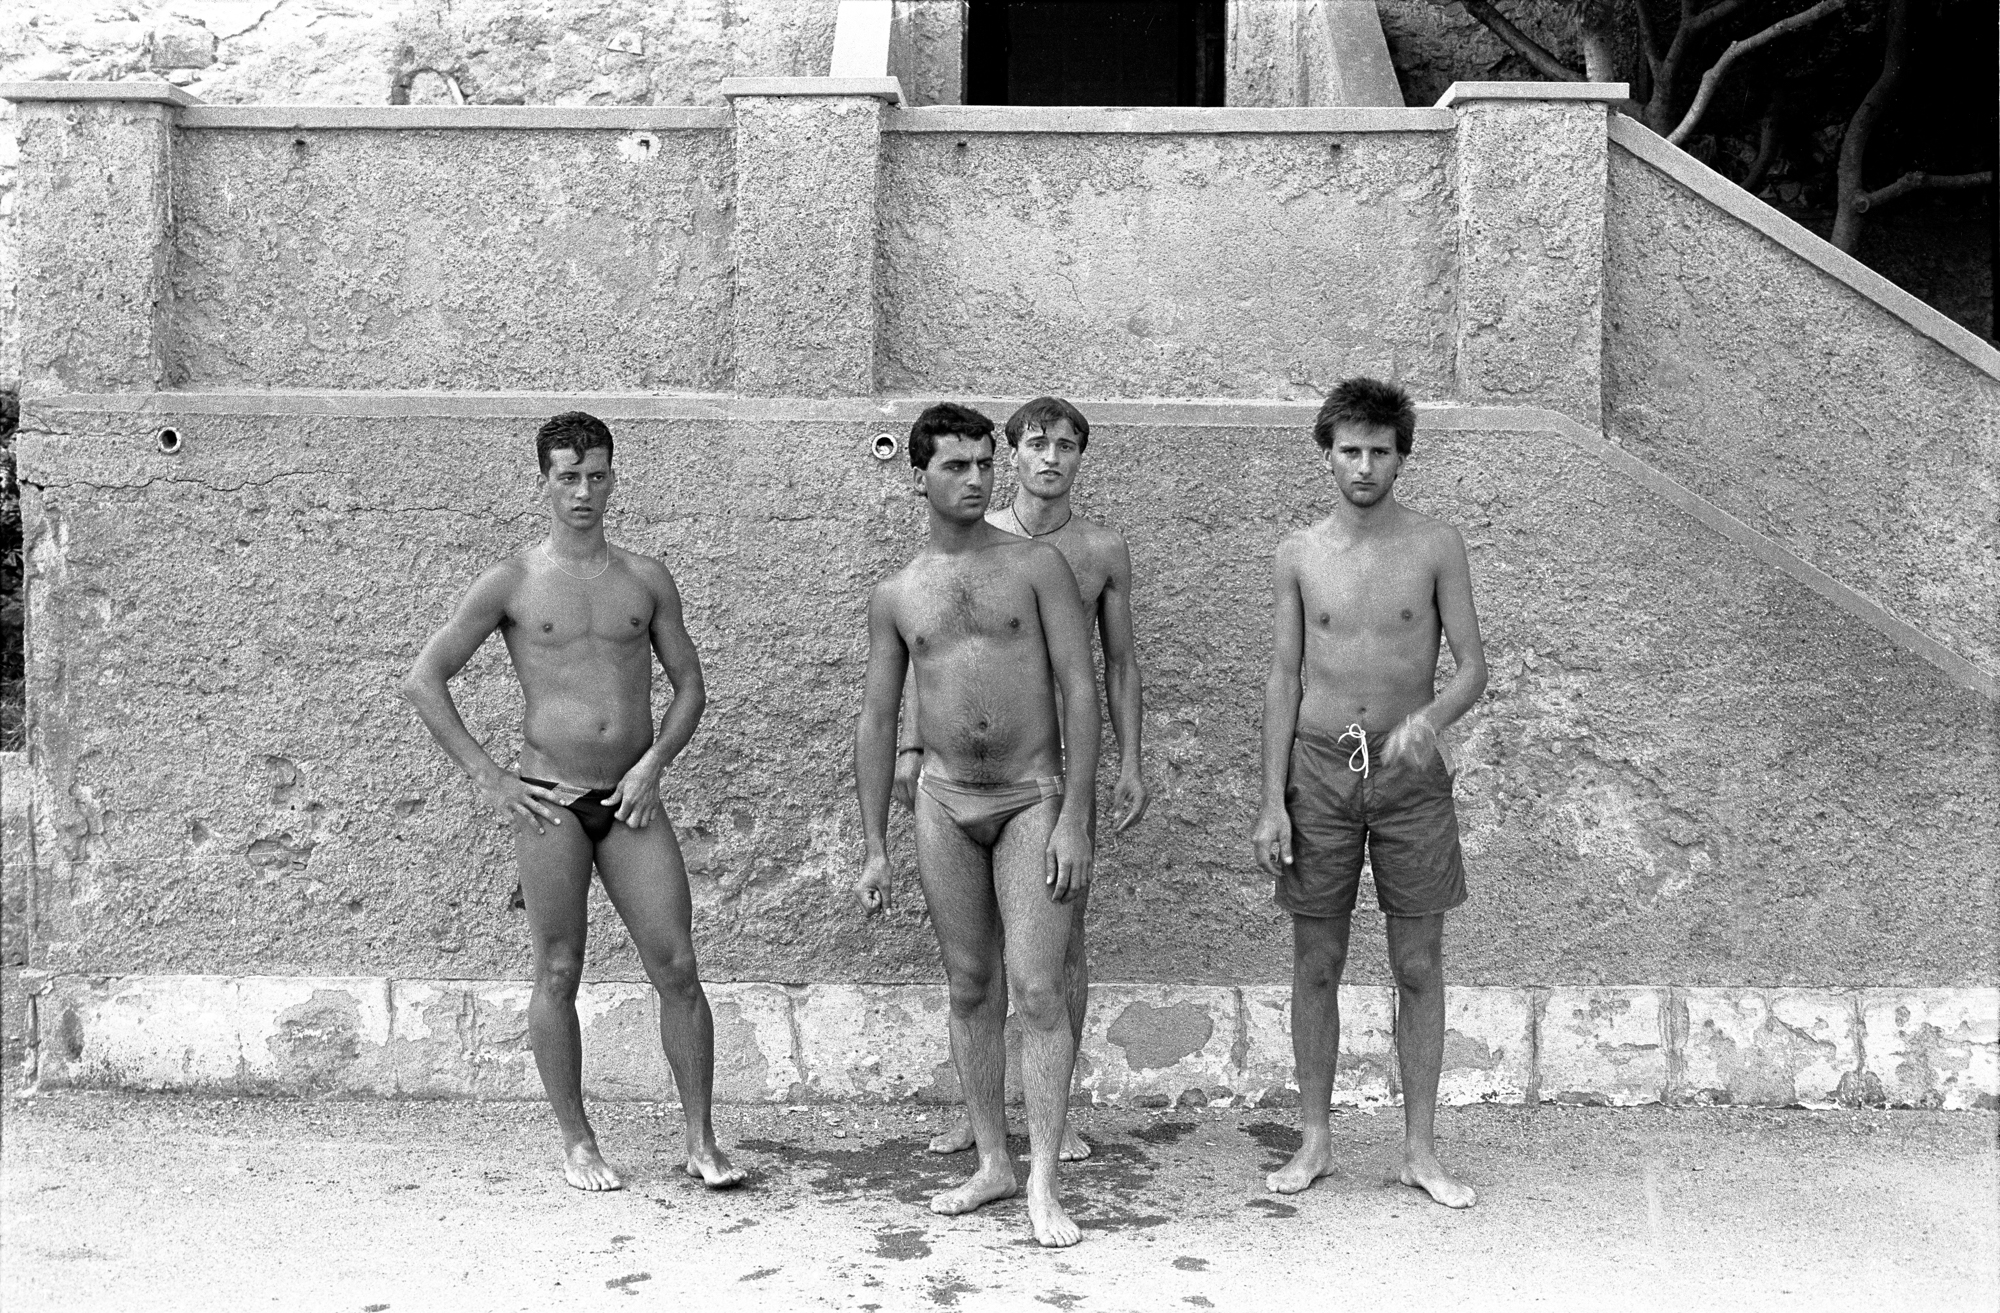 TRAVELS IN ITALY - Italian Boys - Italy - 1986